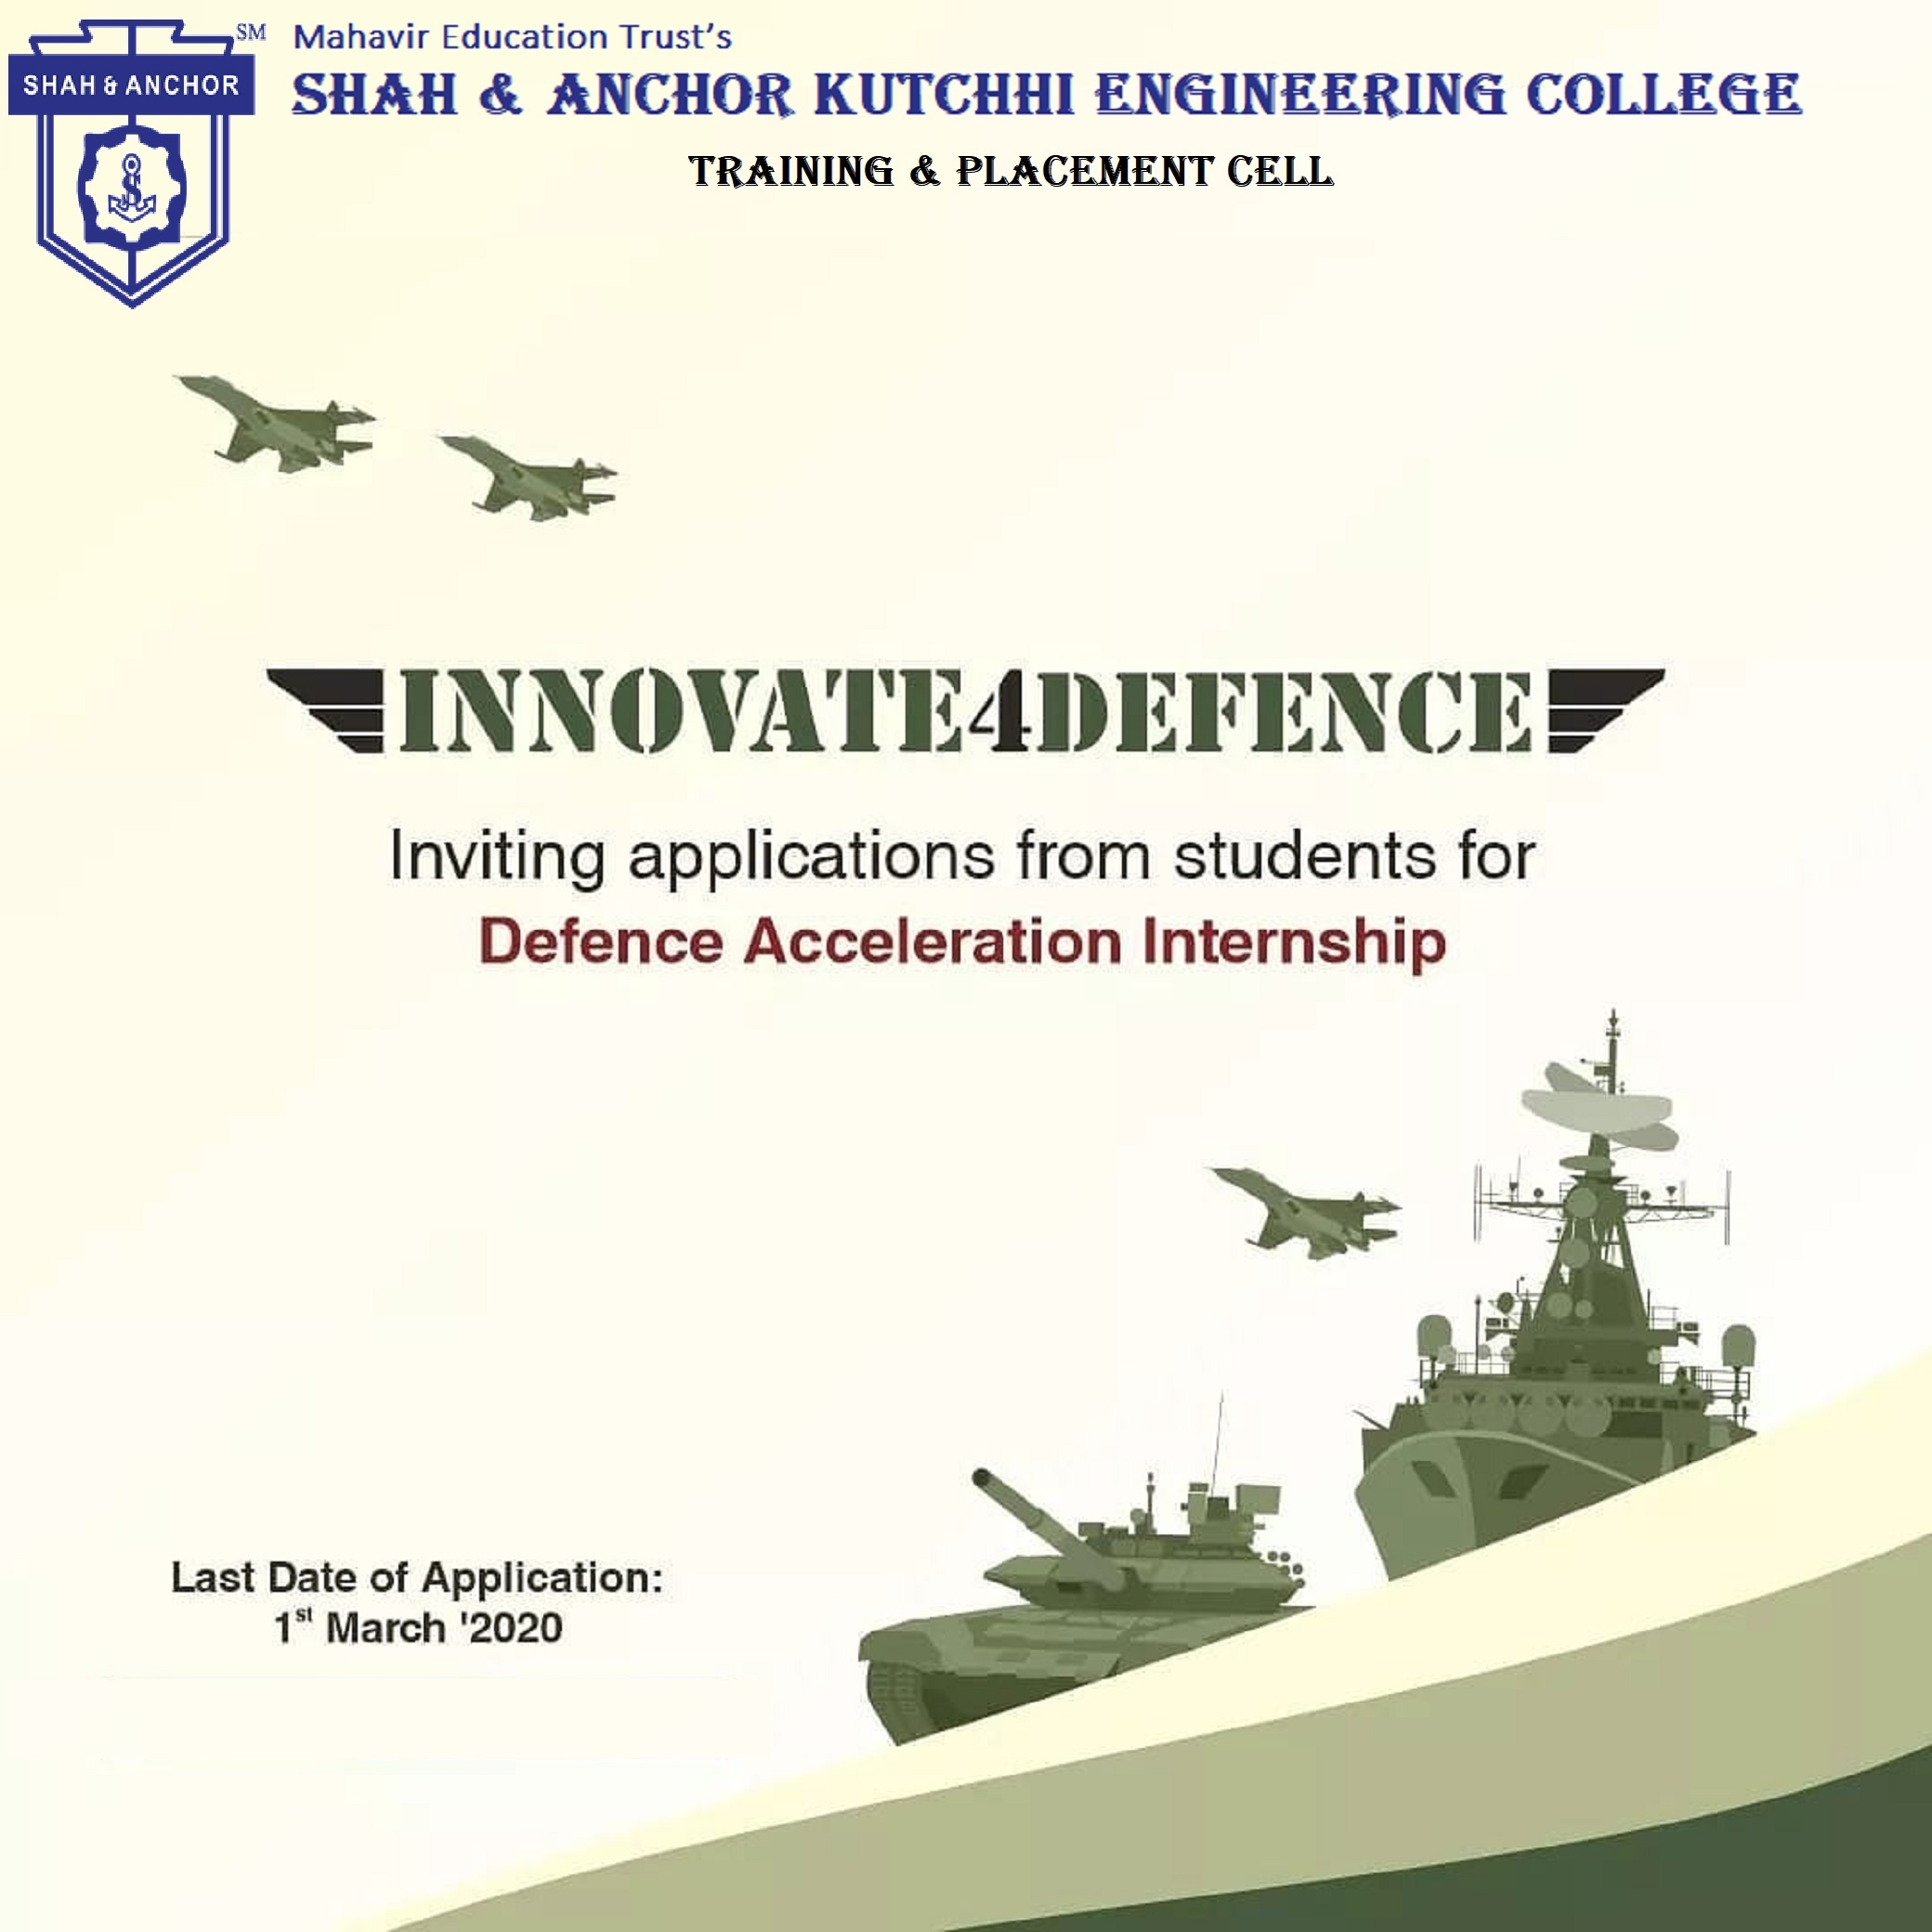 Internship Opportunity from Innovation for Defence Excellence (iDEX)